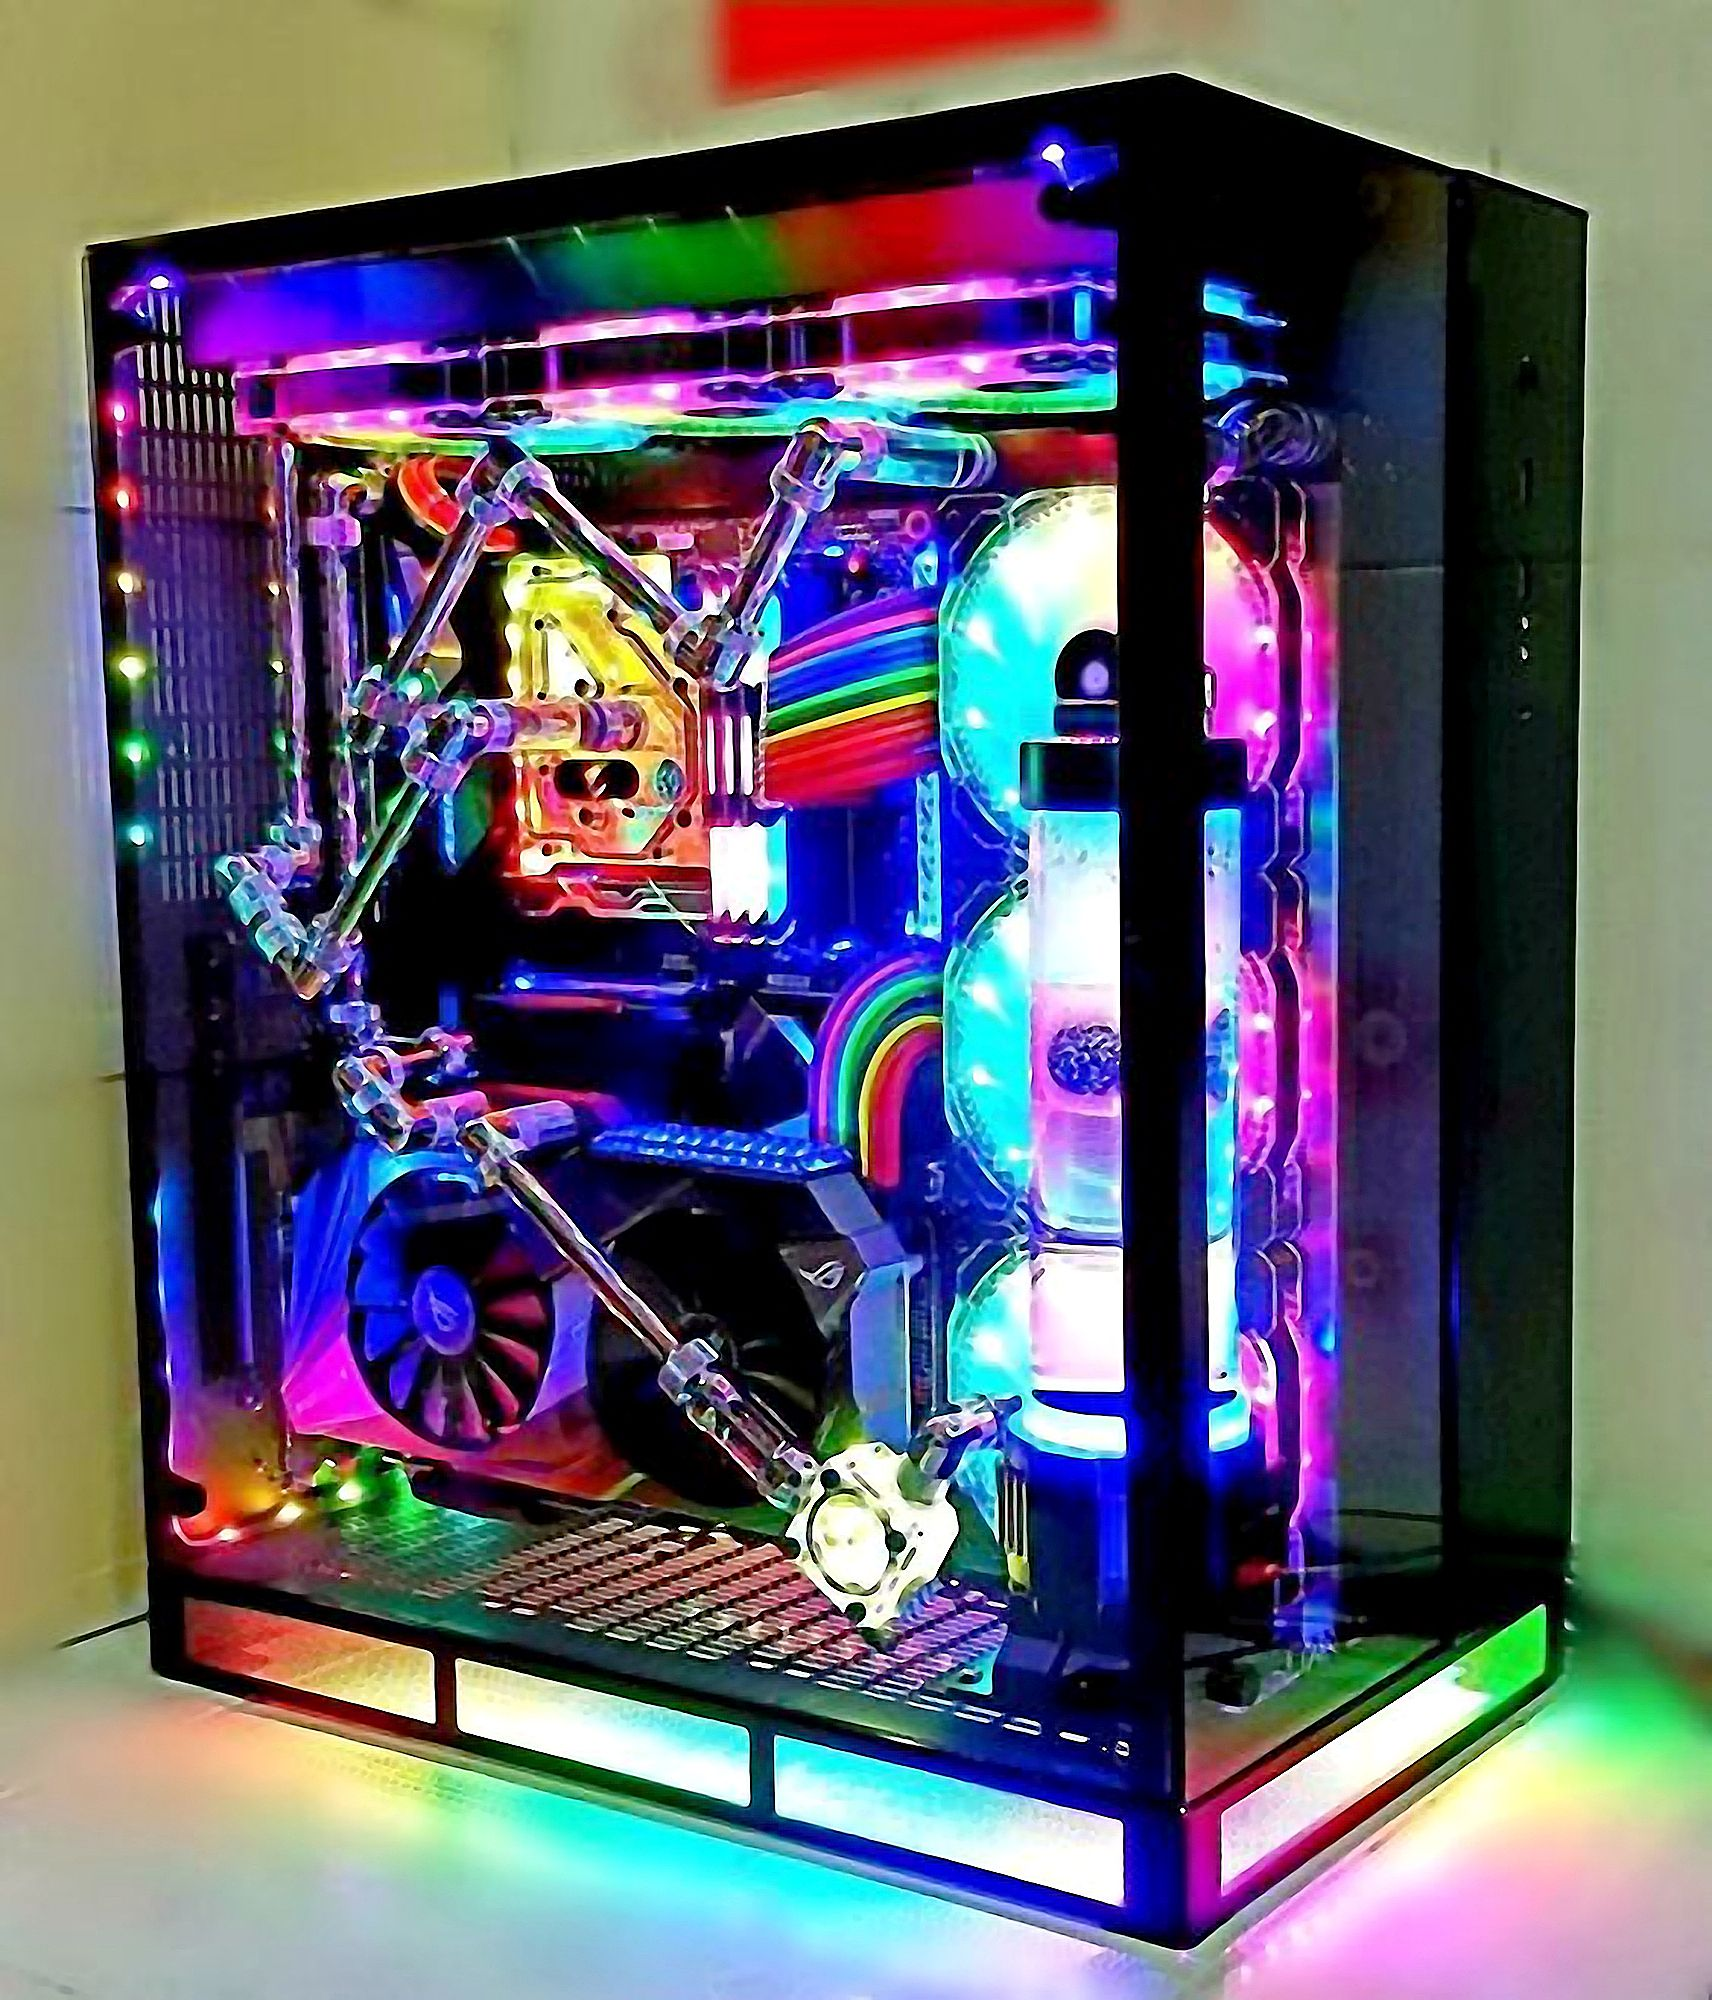 Pin by Rompastompa71 . on Pc Computer setup, Pc gaming